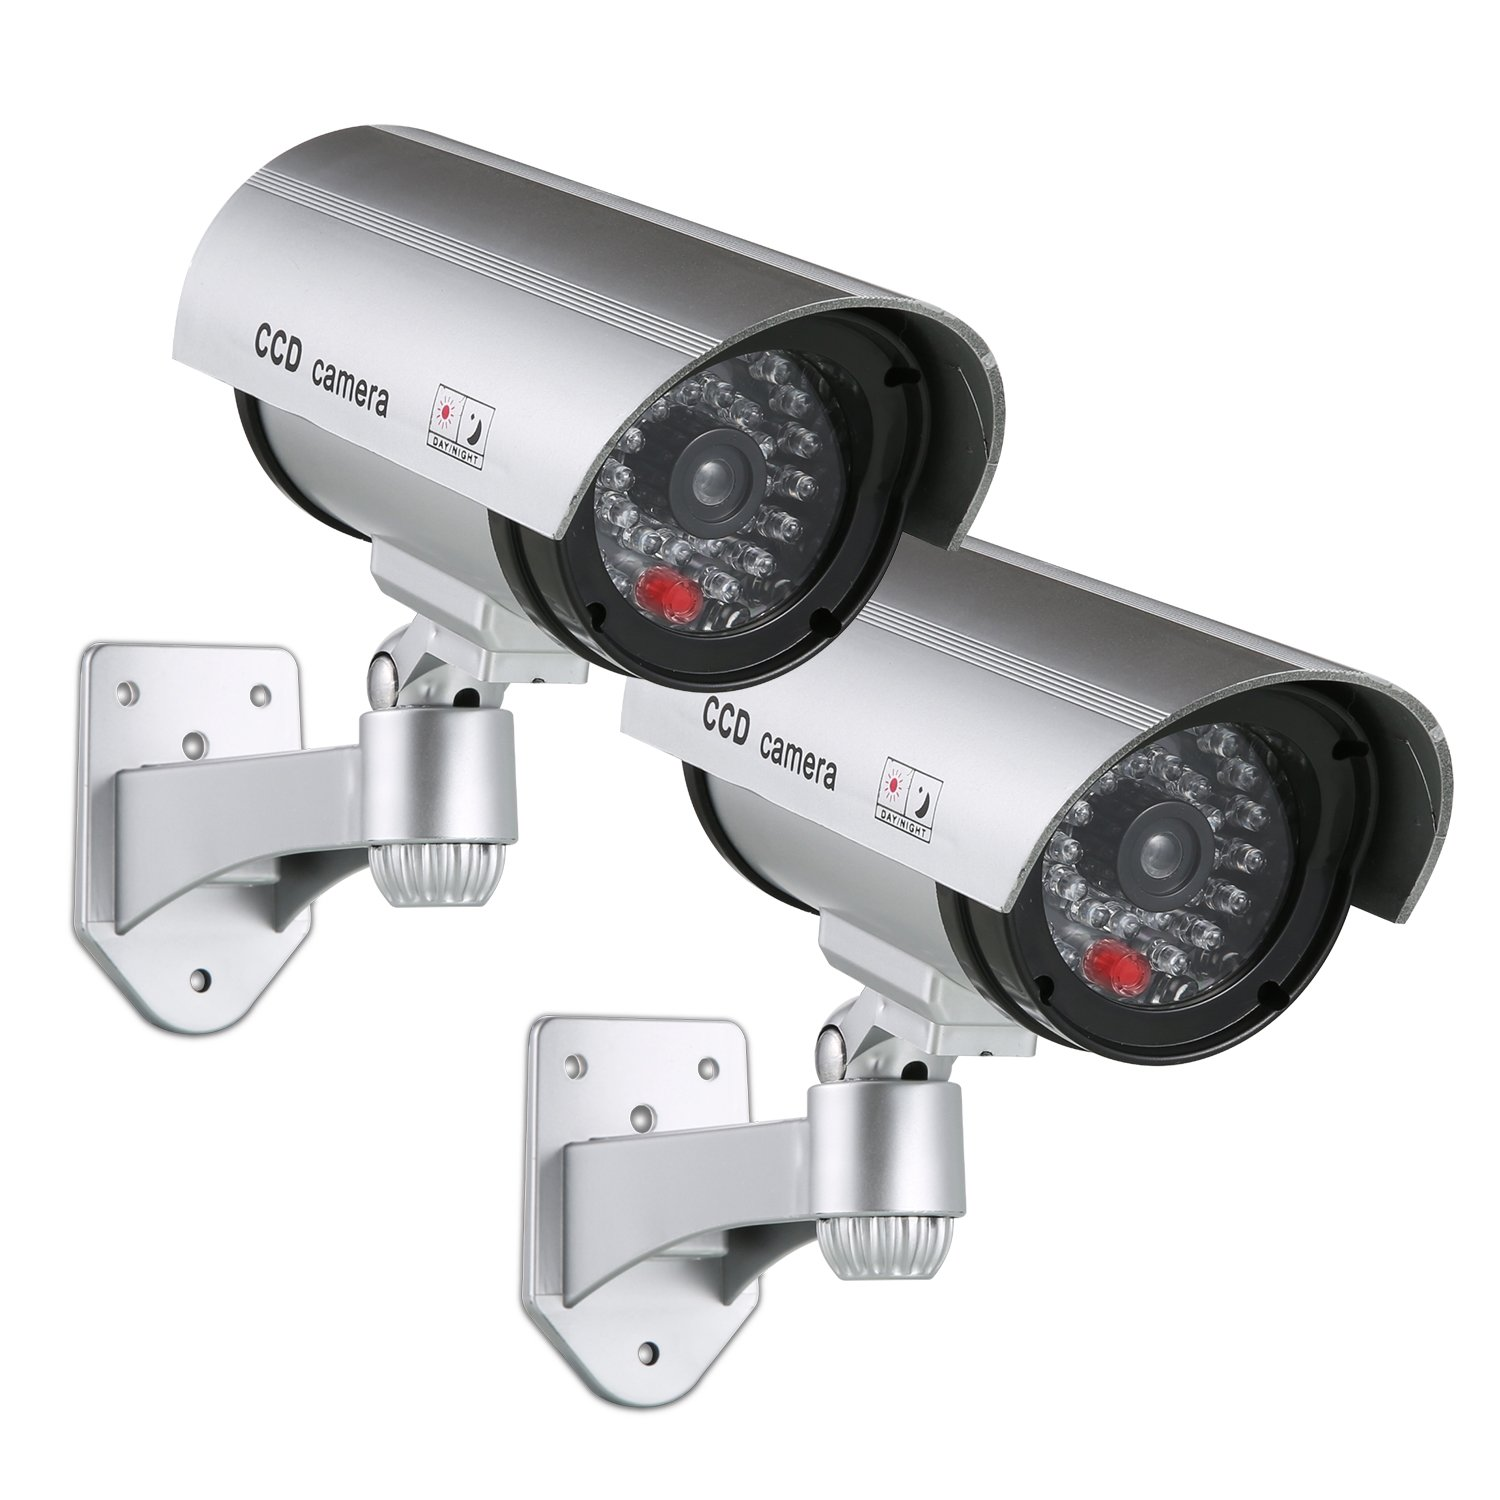 SANNCE Solar Powered Dummy Surveillance Bullet Fake CCTV Camera With Flashing Led-Grey Battery Recharged by Sun, Home or Business(Pack of 2)